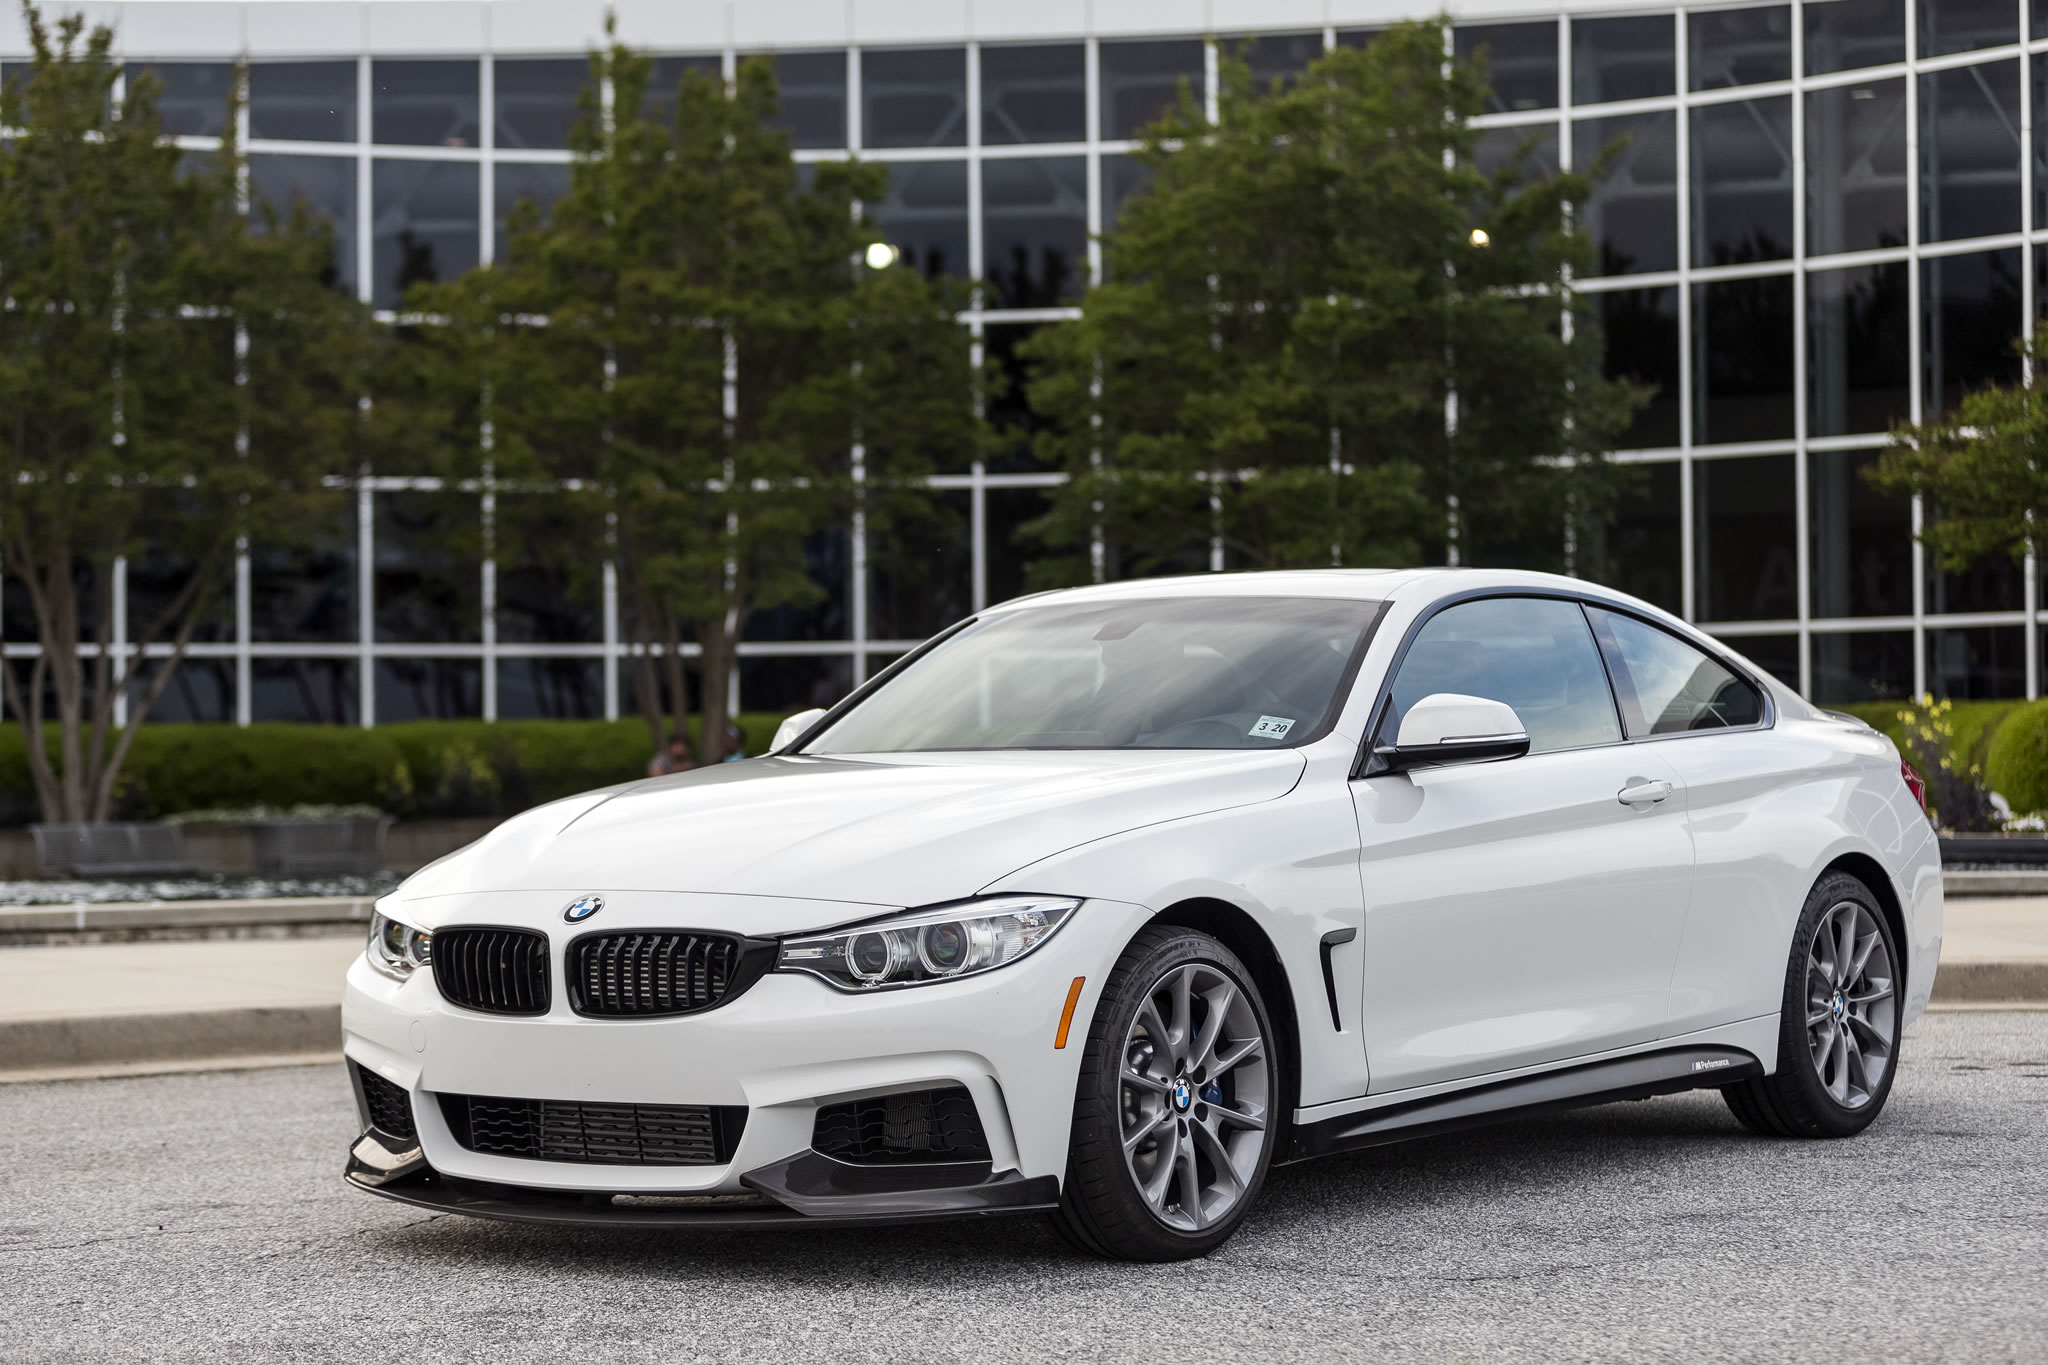 2016 Bmw 435i Zhp Coupe Front Photo Alpine White Paint